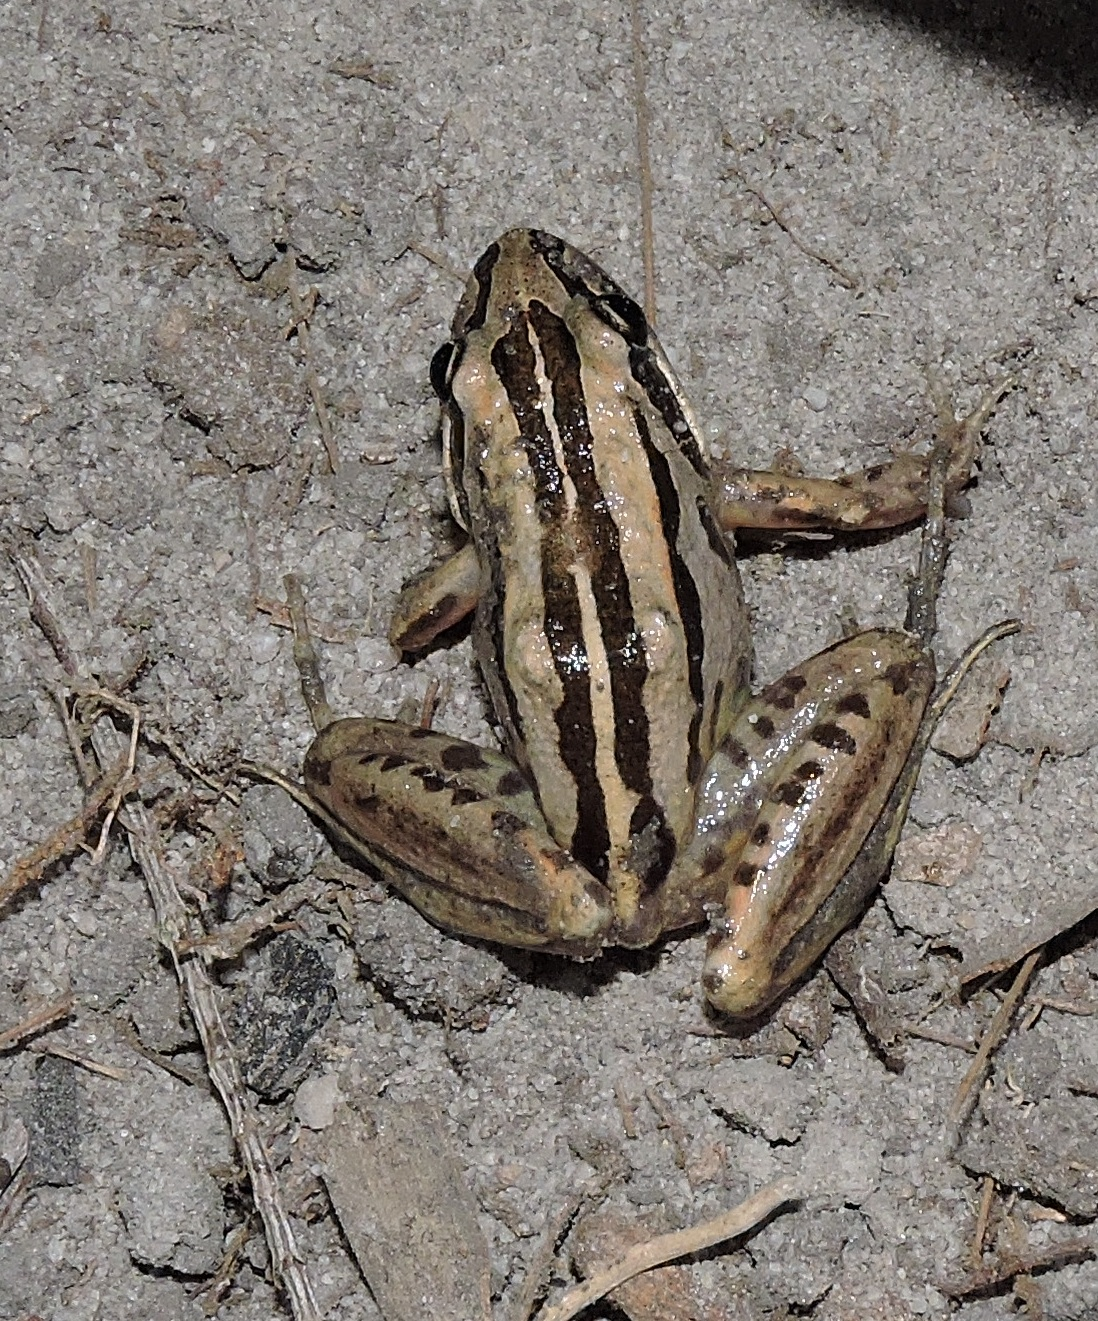 Striped marshfrogs were plentiful at night.